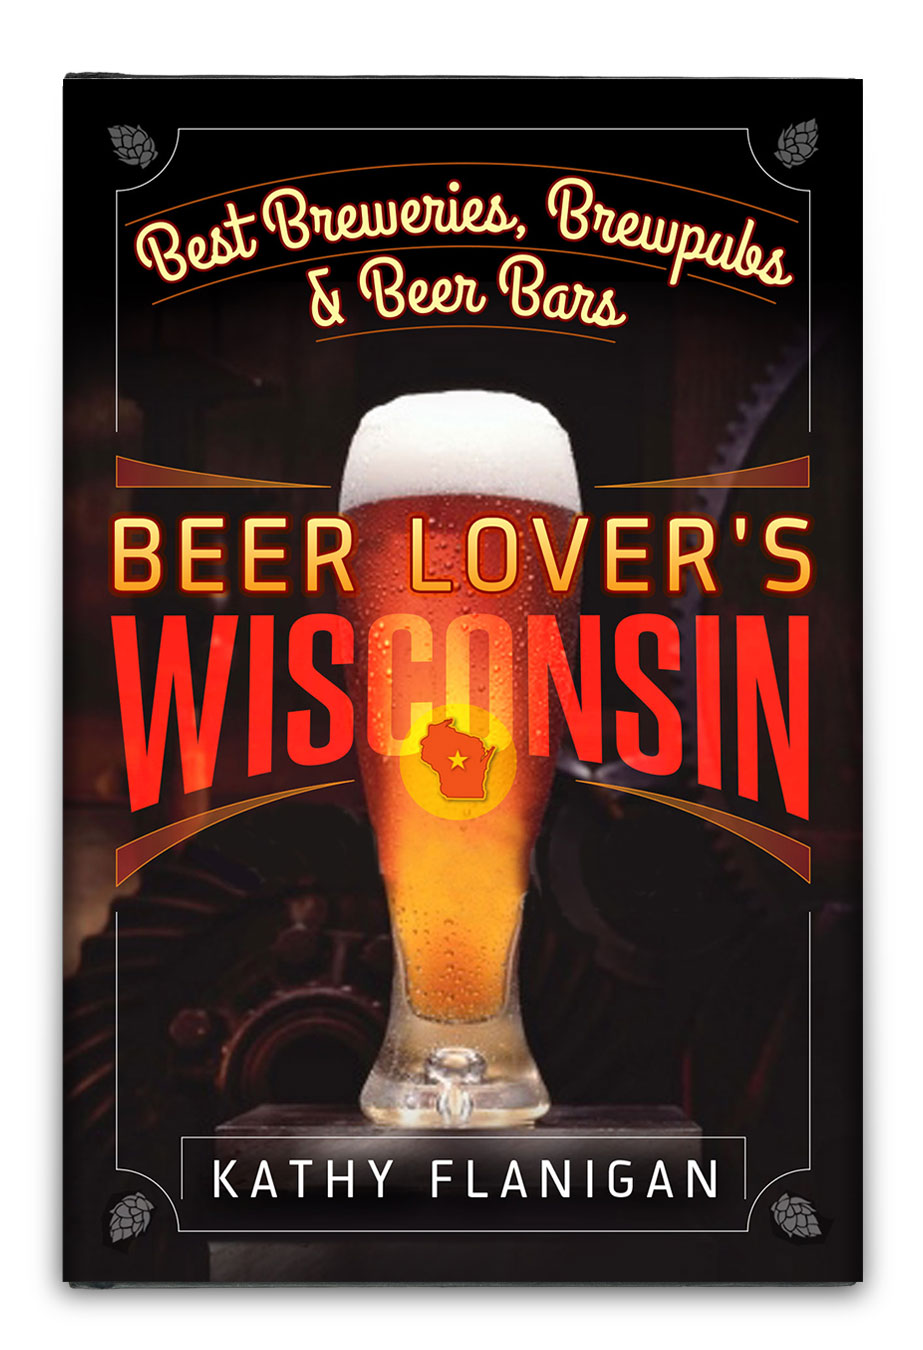 BEER LOVER'S WISCONSIN